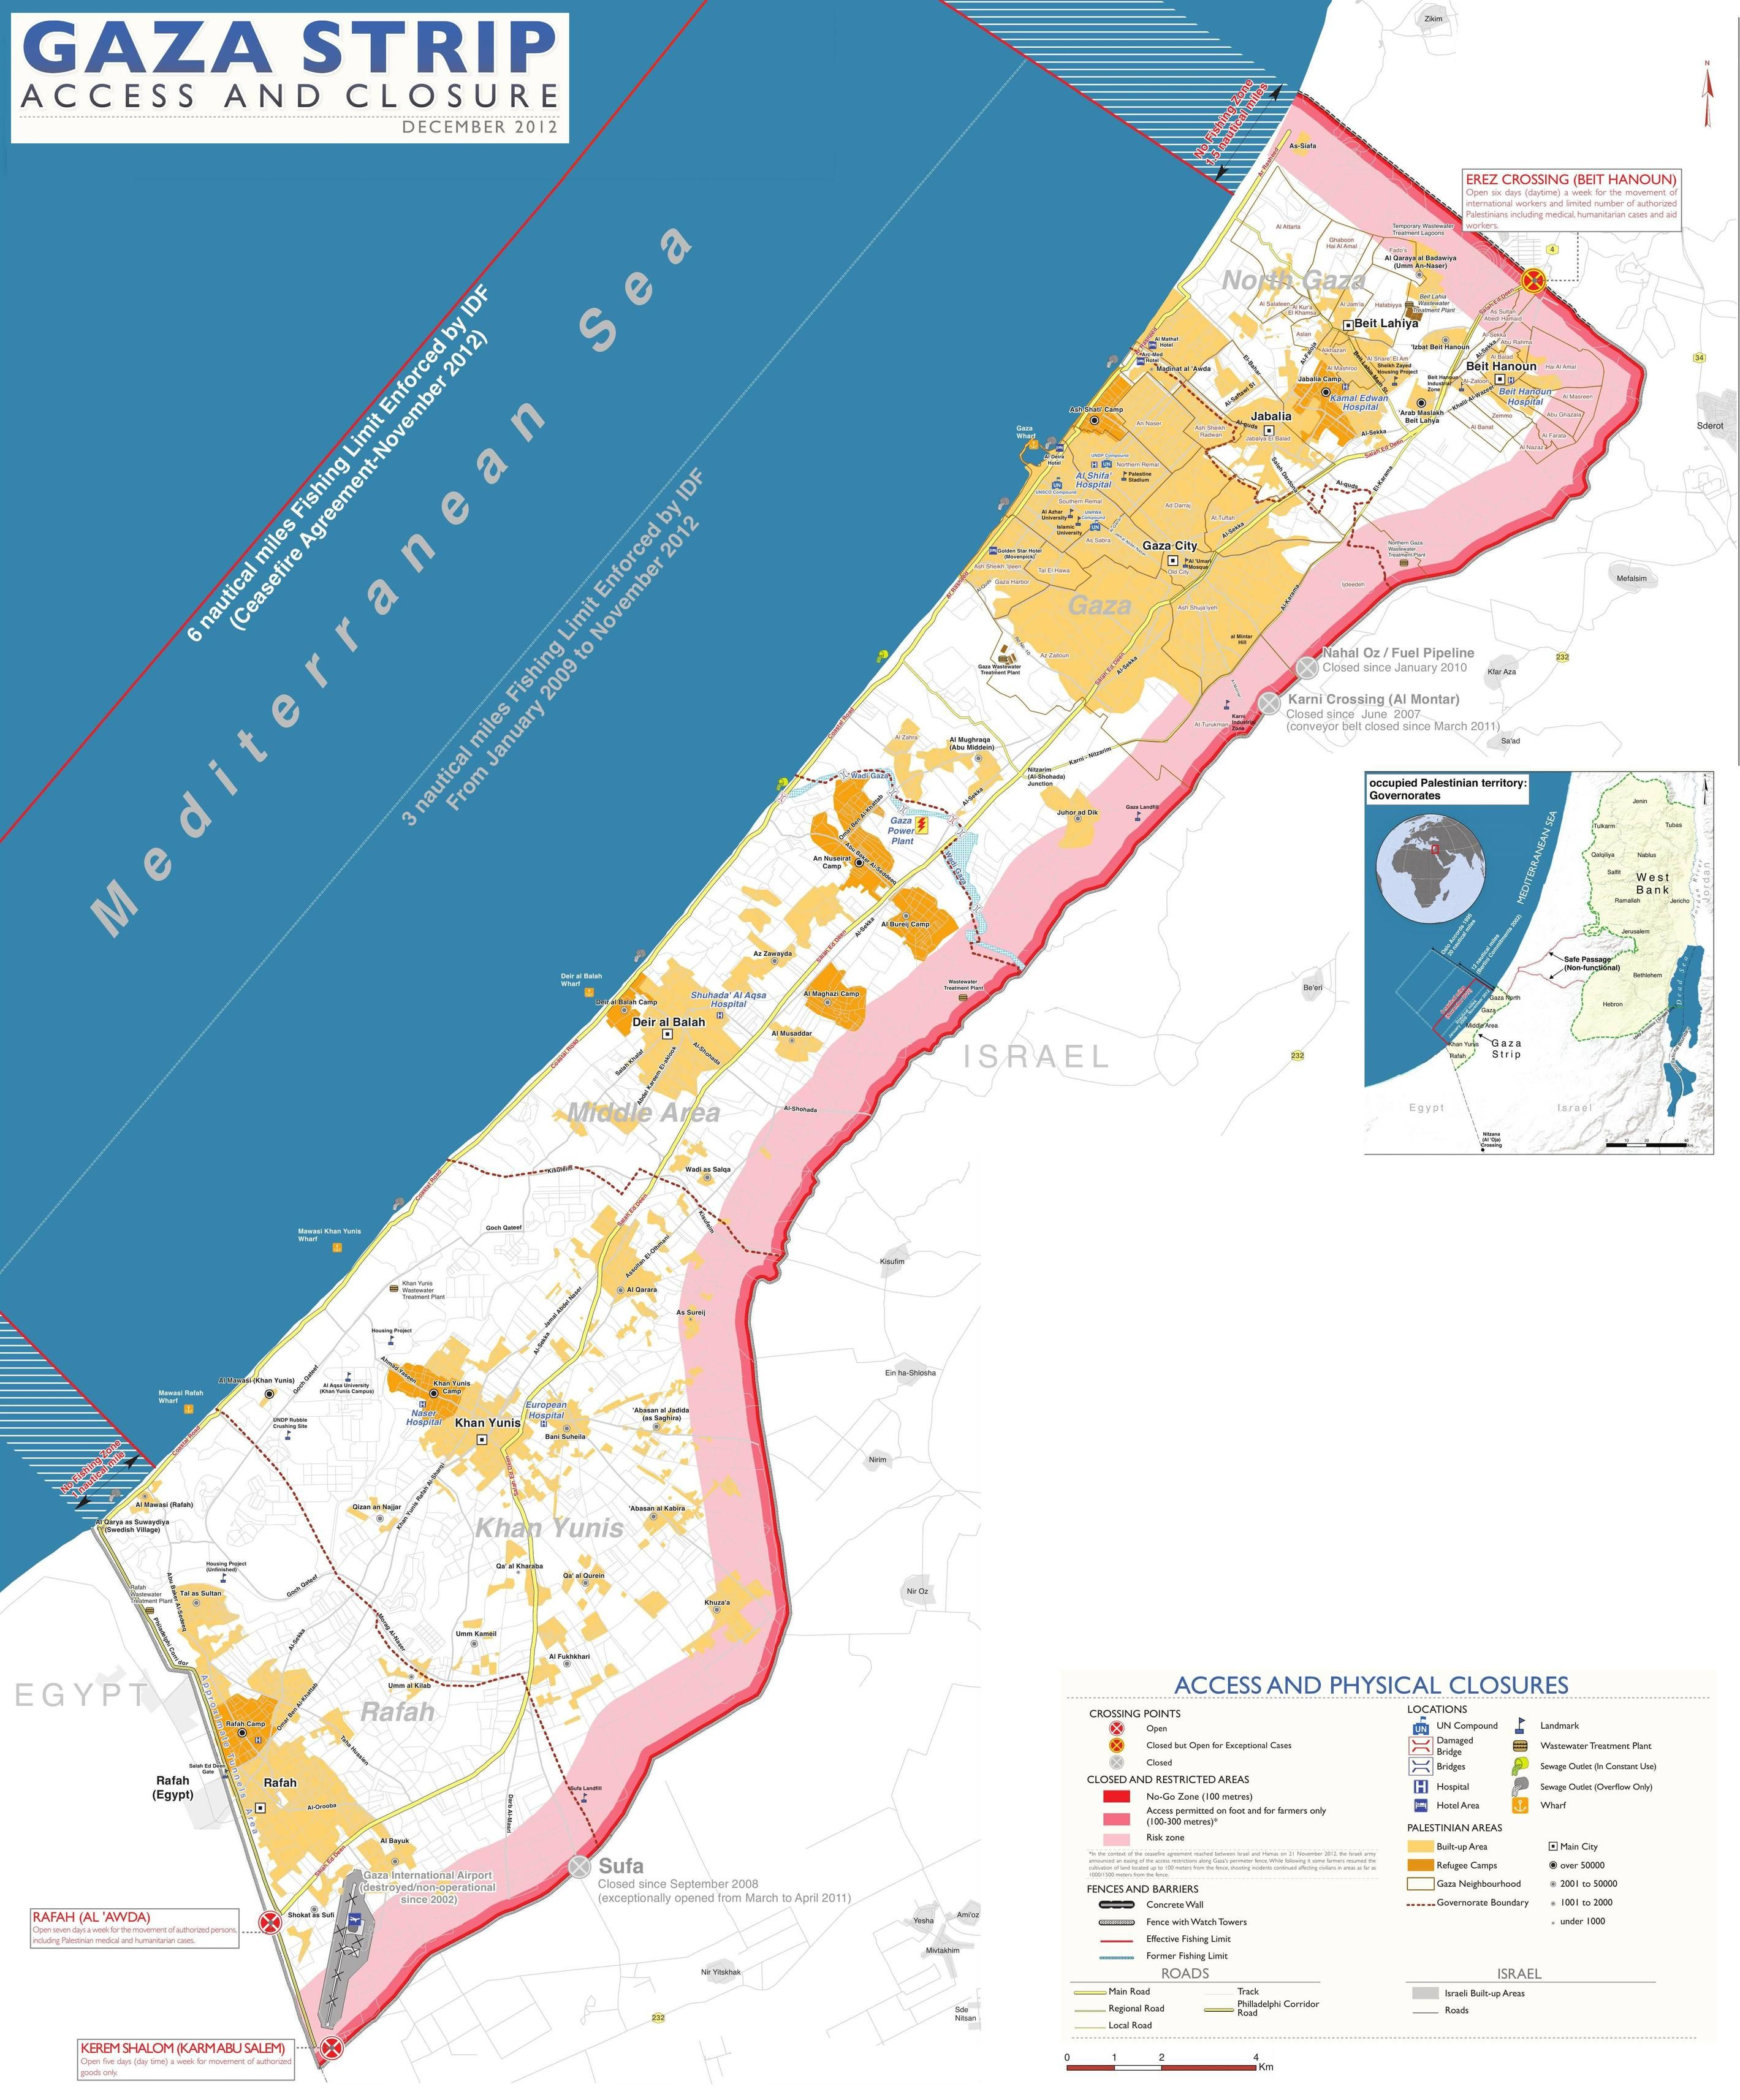 Gaza Strip access and closures December 2012 MAPS